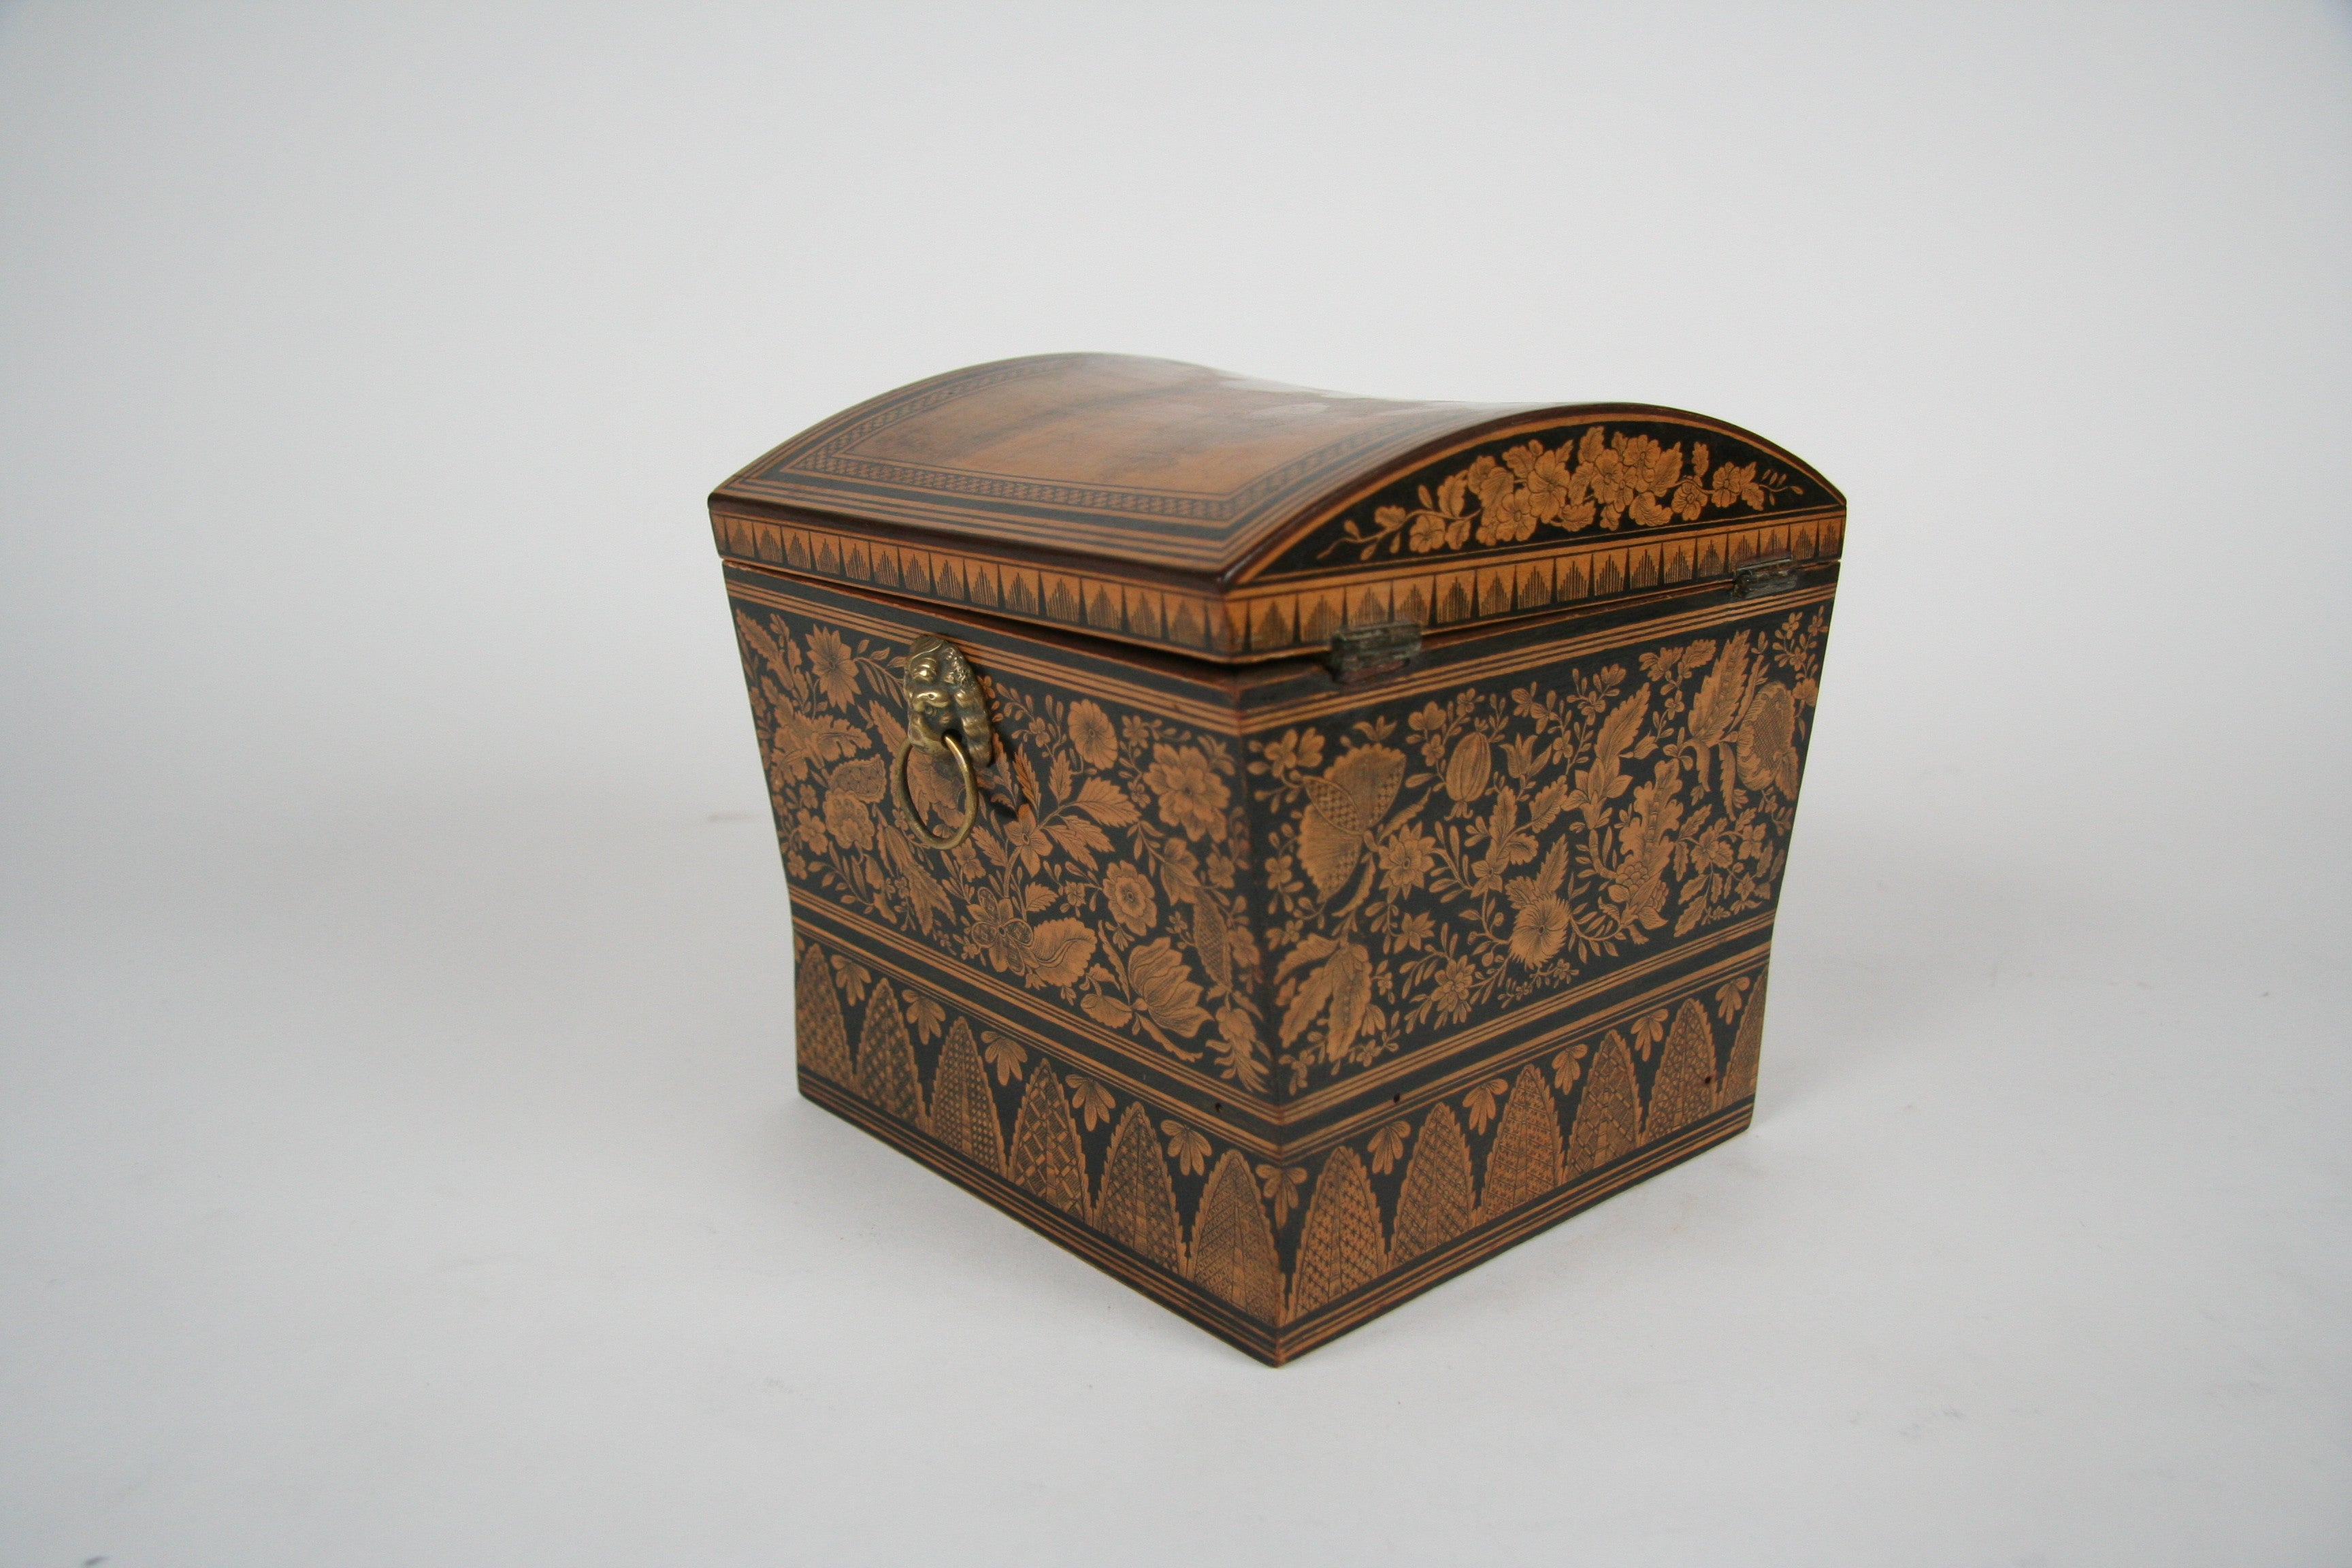 An English Regency Penwork Work Box